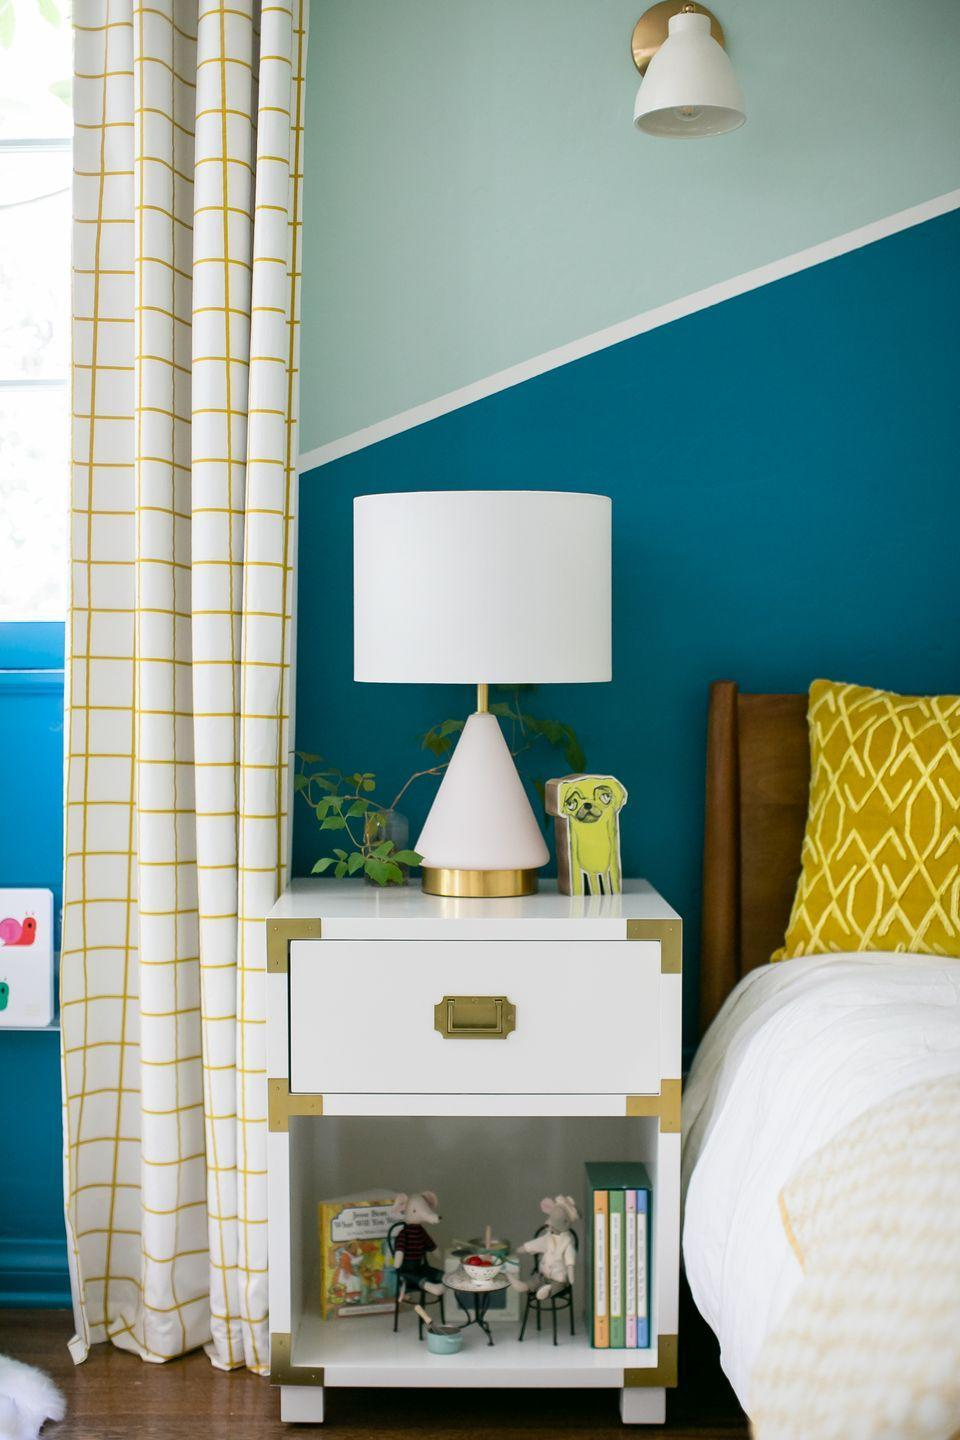 """<p>Teal is a no-fail choice for a bedroom, library, office or even cabinetry, according to designer and HGTV star <a href=""""https://breeganjane.com/"""" rel=""""nofollow noopener"""" target=""""_blank"""" data-ylk=""""slk:Breegan Jane"""" class=""""link rapid-noclick-resp"""">Breegan Jane</a>. Her favorite? Benjamin Moore's <a href=""""https://www.benjaminmoore.com/en-us/color-overview/find-your-color/color/2136-40/aegean-teal?color=2136-40"""" rel=""""nofollow noopener"""" target=""""_blank"""" data-ylk=""""slk:Aegean Teal"""" class=""""link rapid-noclick-resp"""">Aegean Teal</a>. """"Teal is reminiscent of the shimmering waters of Ibiza on a warm, sunny day,"""" says Jane. """"It's synonymous with serenity, and who couldn't use a little more of that?""""<br></p><p><a class=""""link rapid-noclick-resp"""" href=""""https://www.benjaminmoore.com/en-us/color-overview/find-your-color/color/2136-40/aegean-teal?color=2136-40"""" rel=""""nofollow noopener"""" target=""""_blank"""" data-ylk=""""slk:SHOP NOW"""">SHOP NOW</a></p>"""